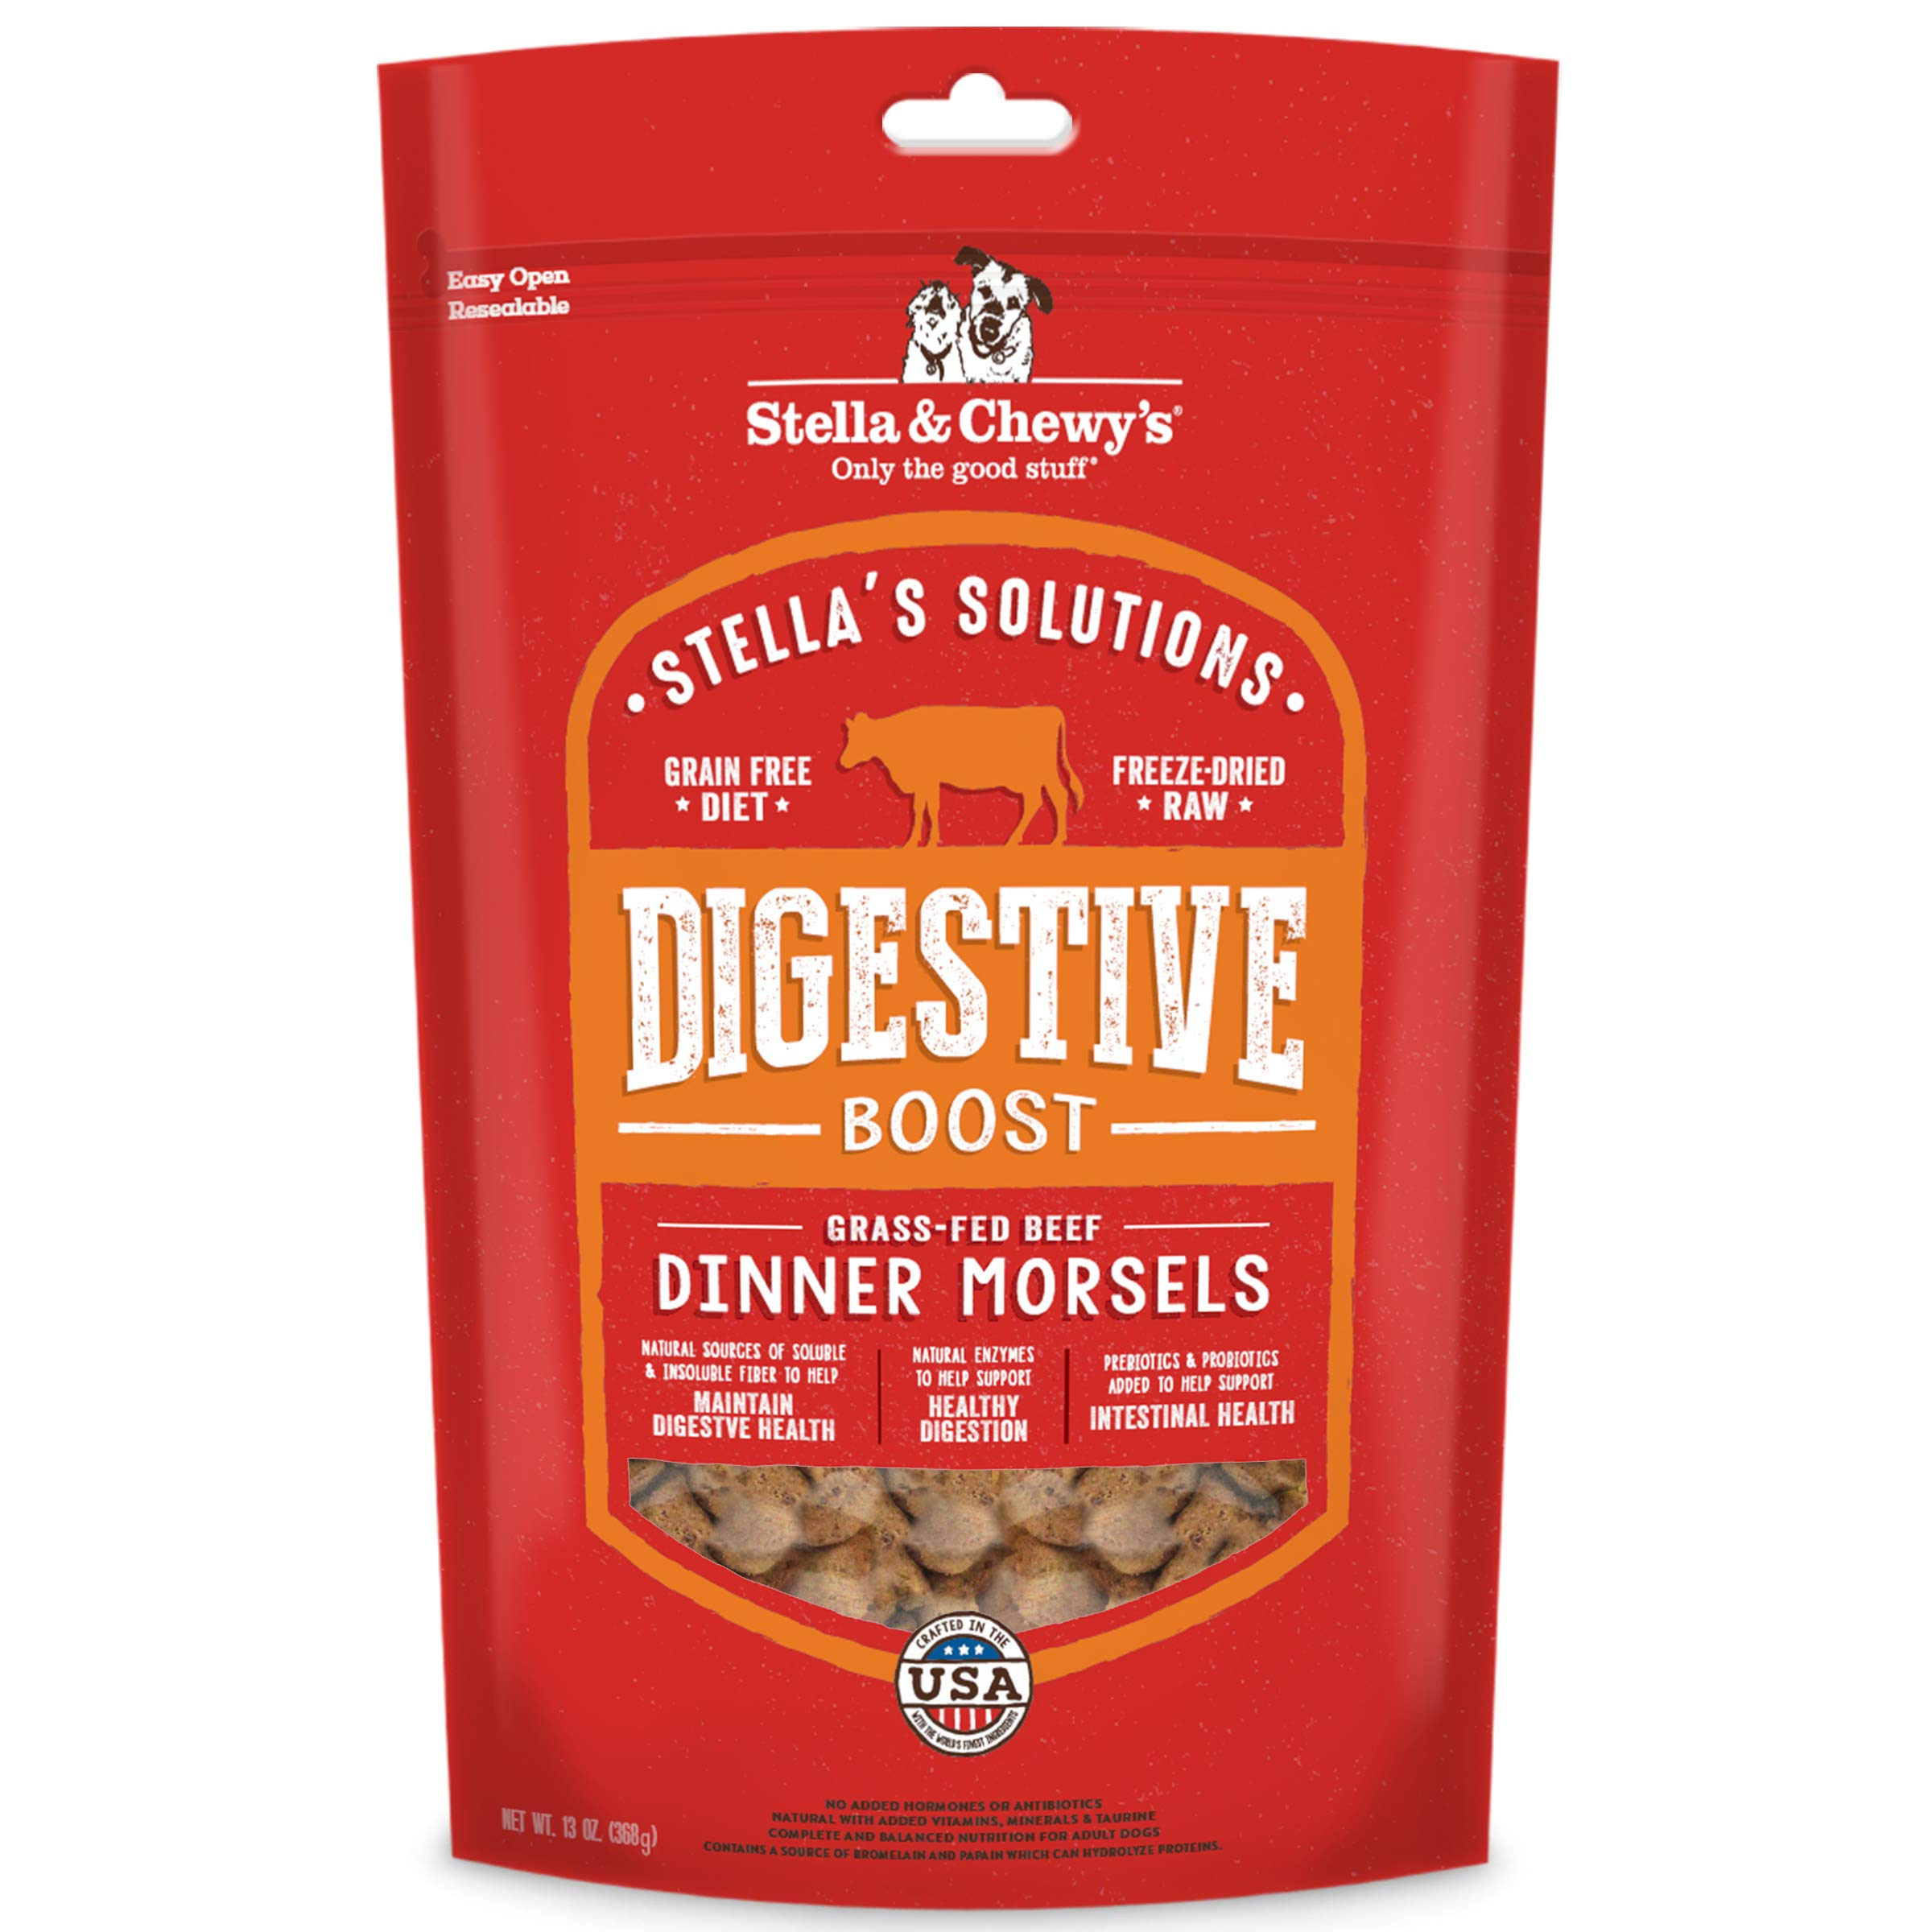 Stella & Chewy's Stella's Solutions Digestive Boost Grass-Fed Beef Dinner Morsels Freeze-Dried Dog Food, 13 oz by Stella & Chewy's